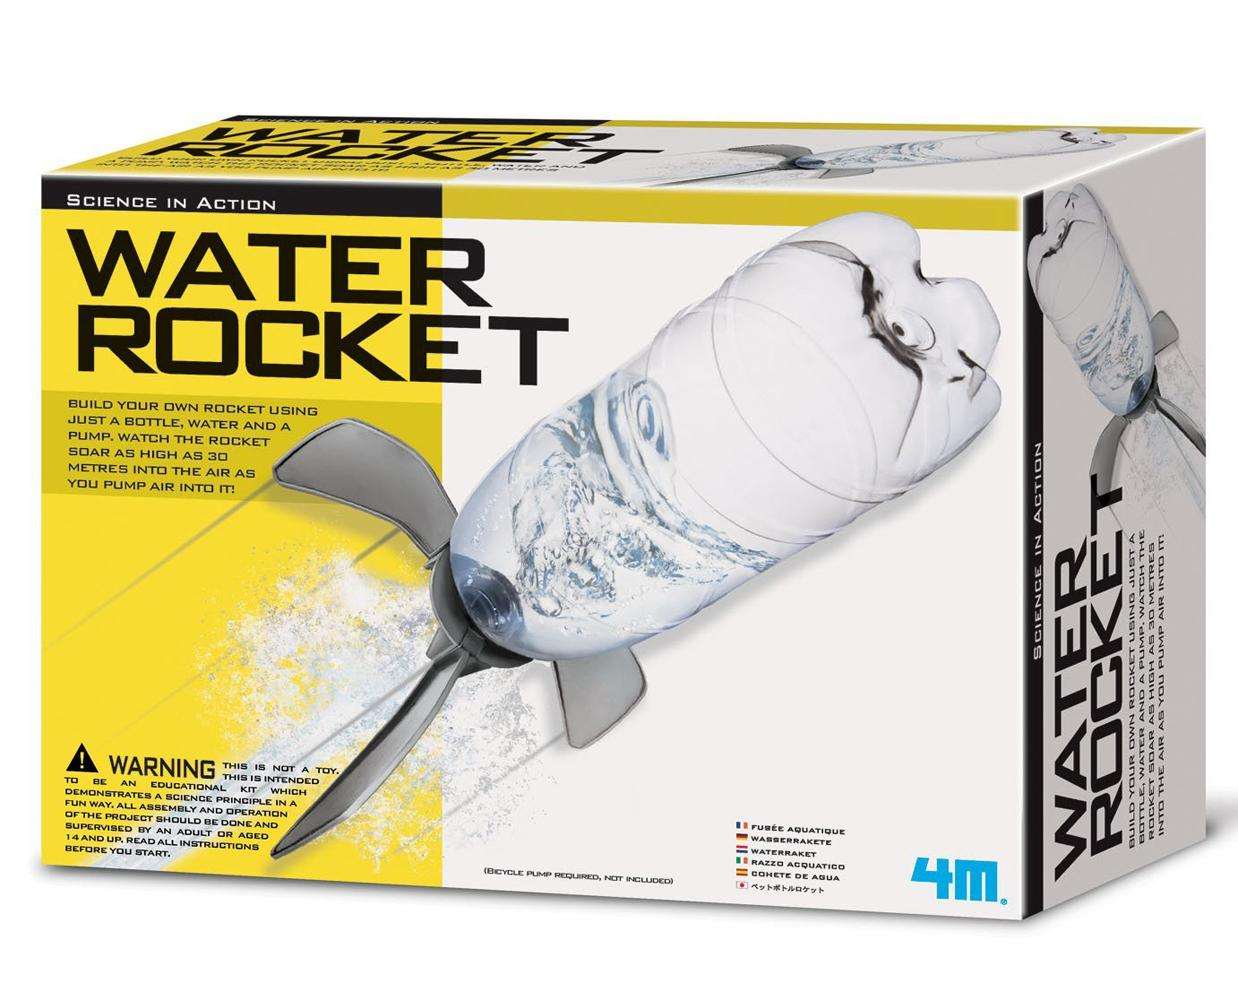 4m water rocket instructions